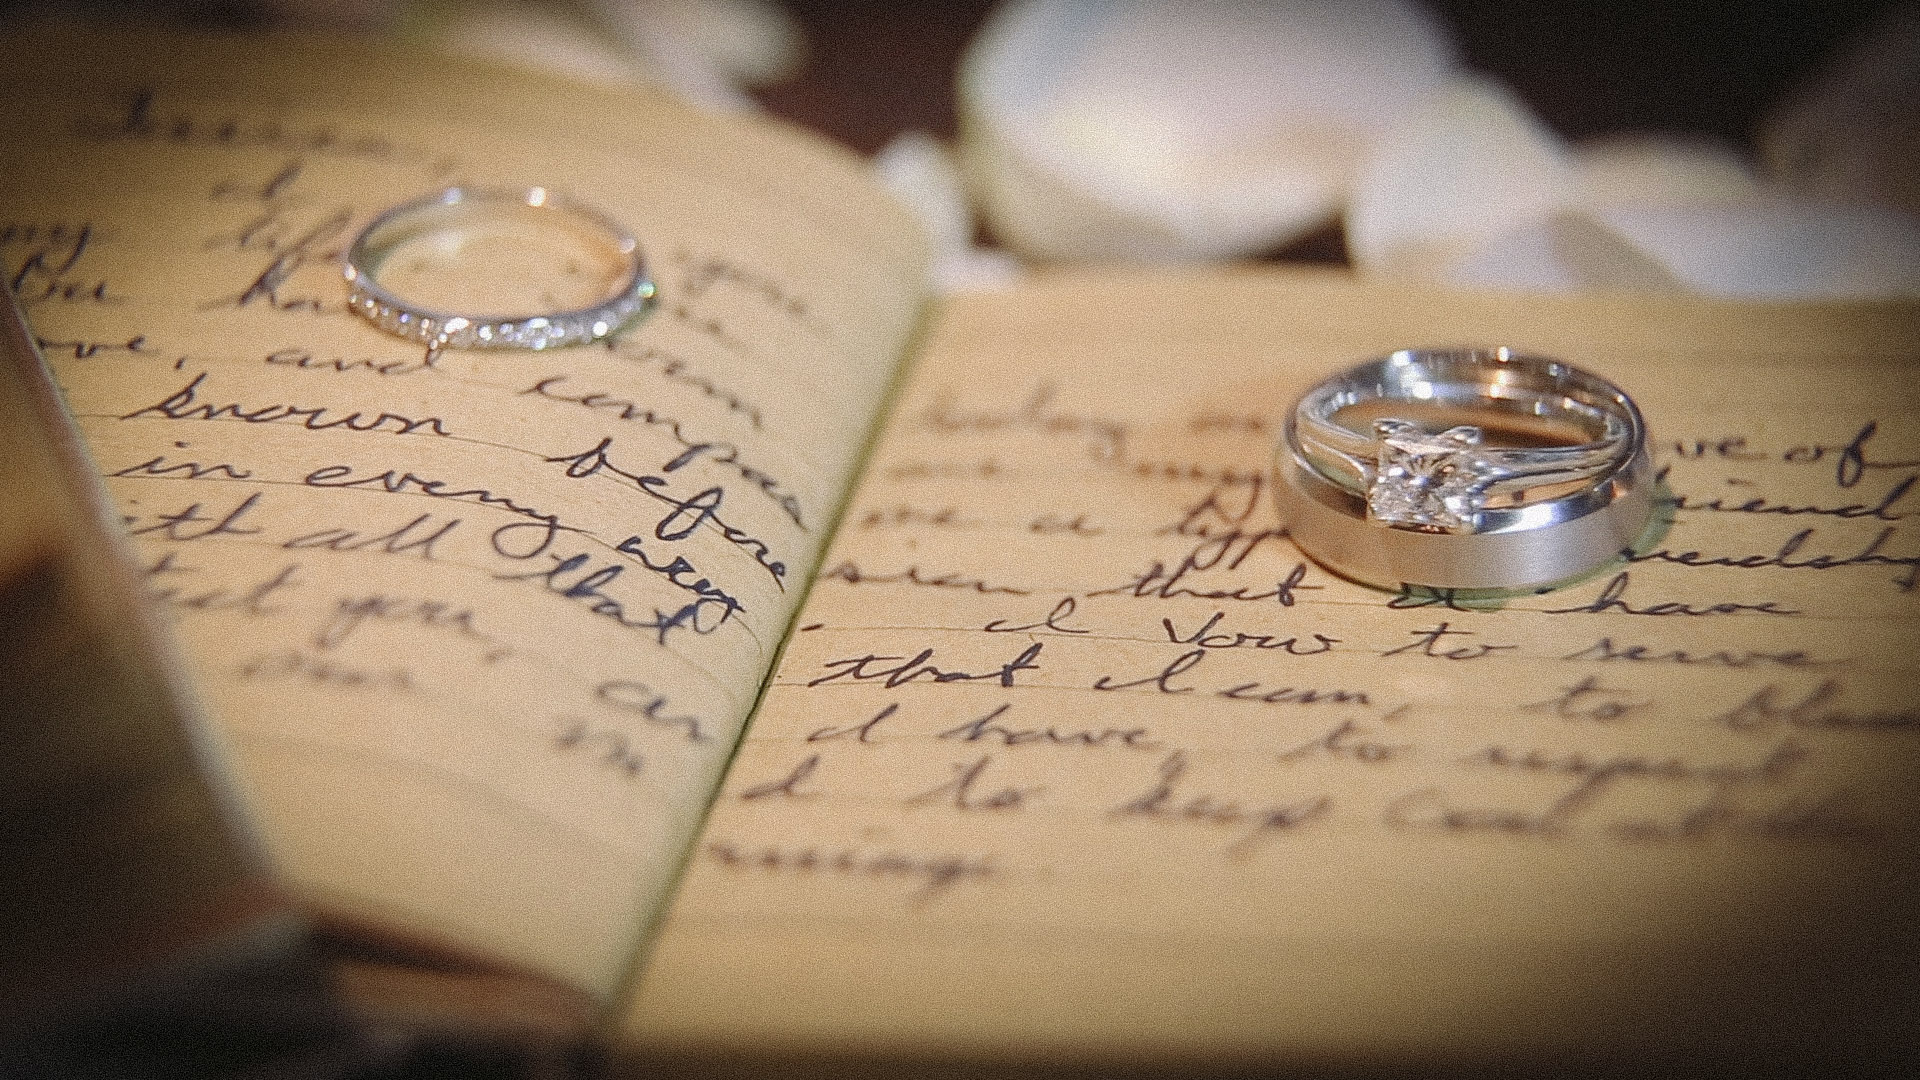 Wedding Rings on wedding Vows Lloyd Films